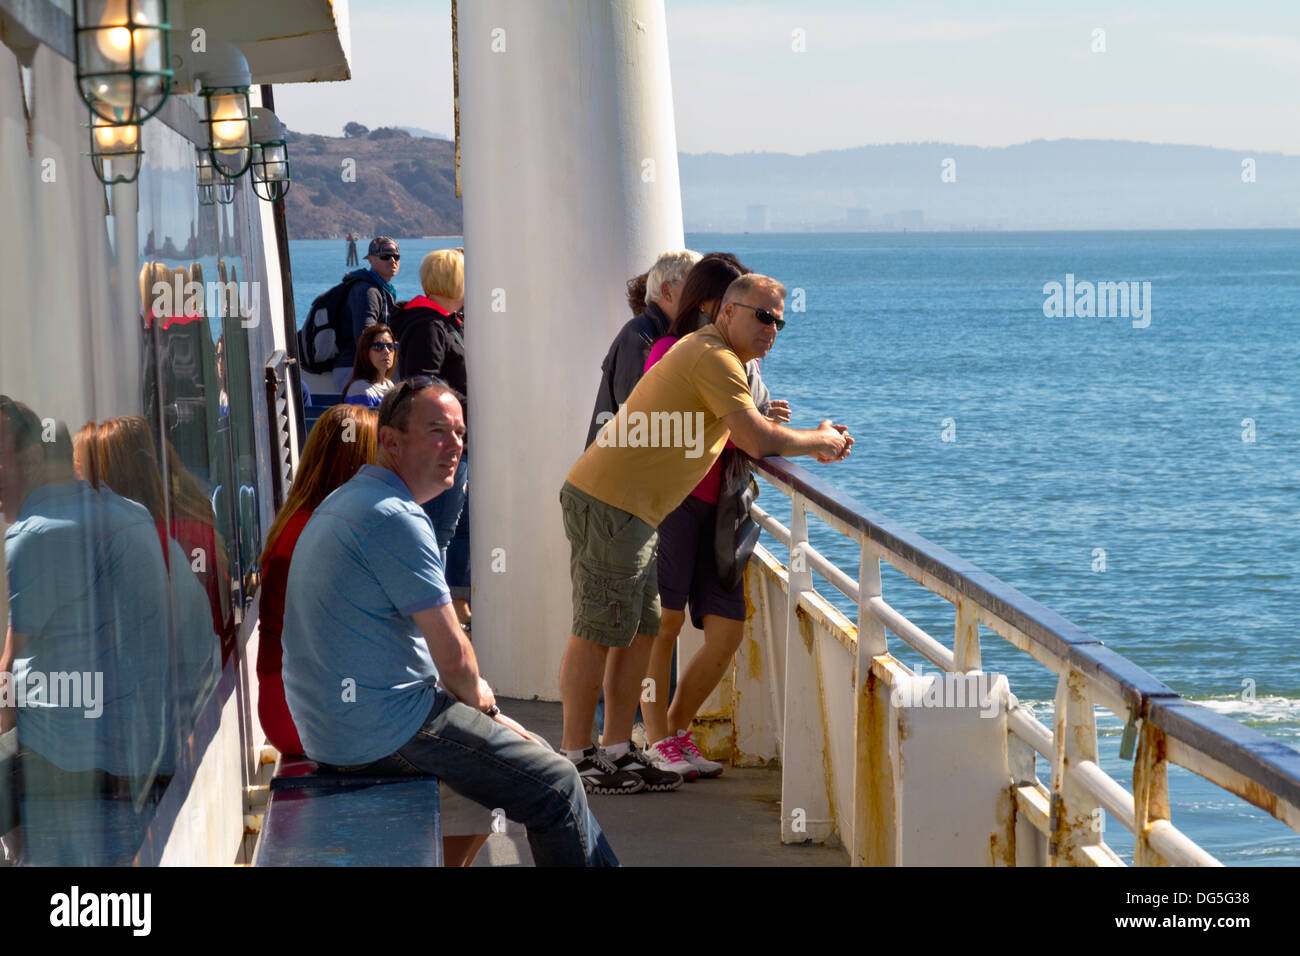 Sightseers riding the ferry from San Francisco to Sausalito. - Stock Image